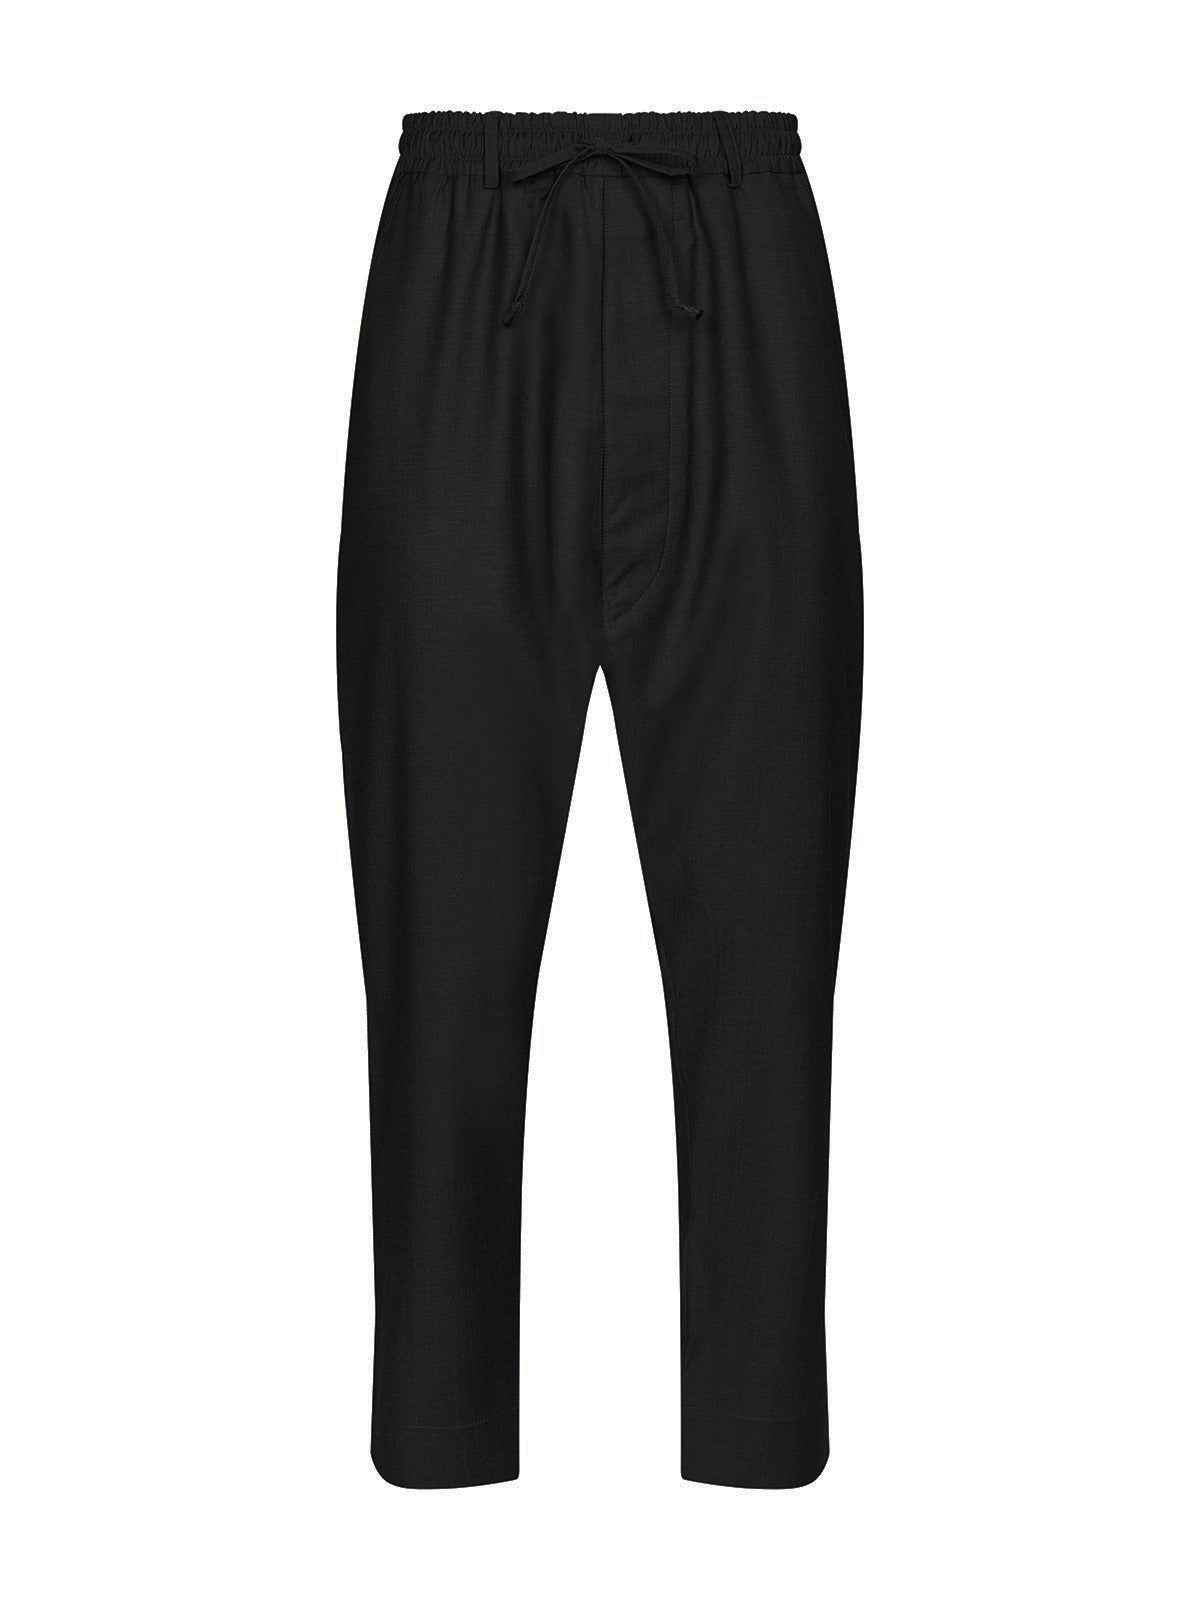 Fender trousers in black